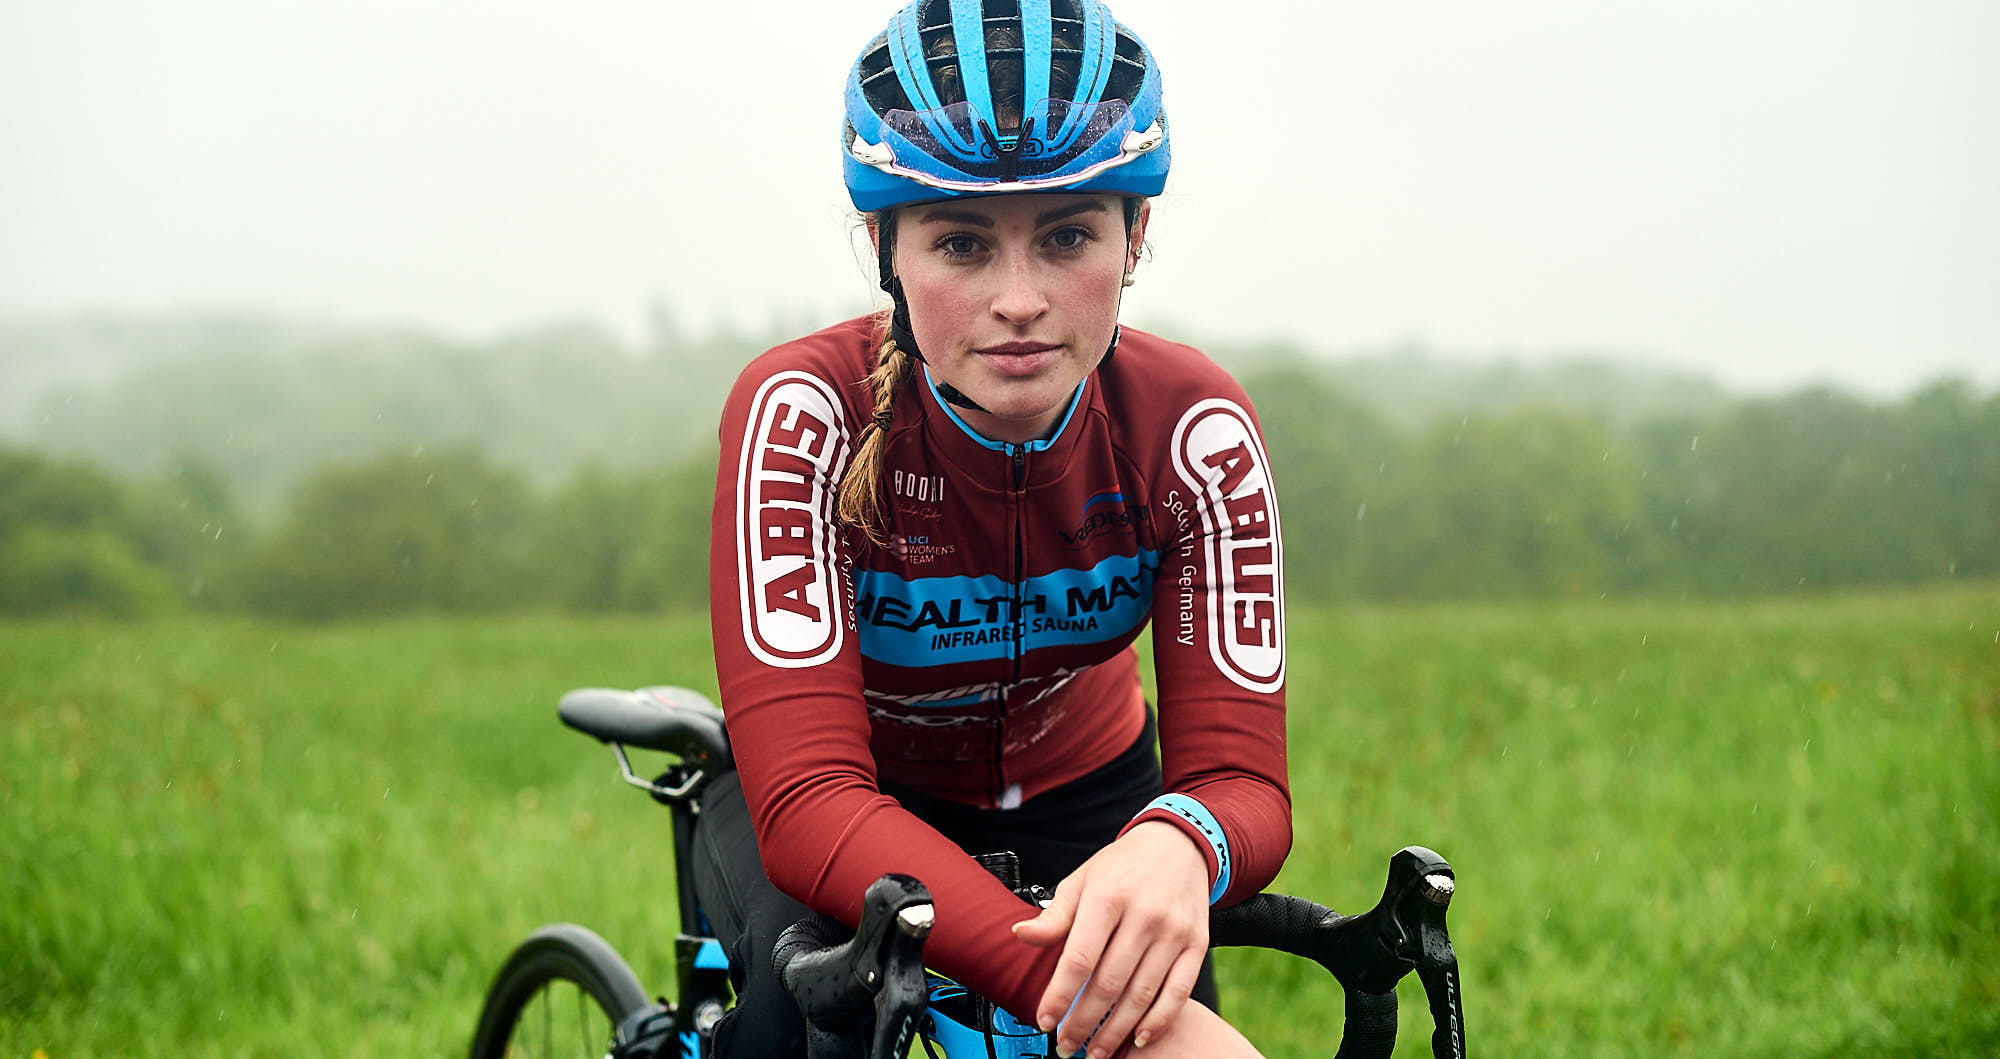 Portrait of Dutch cyclist Elodie Kuijper